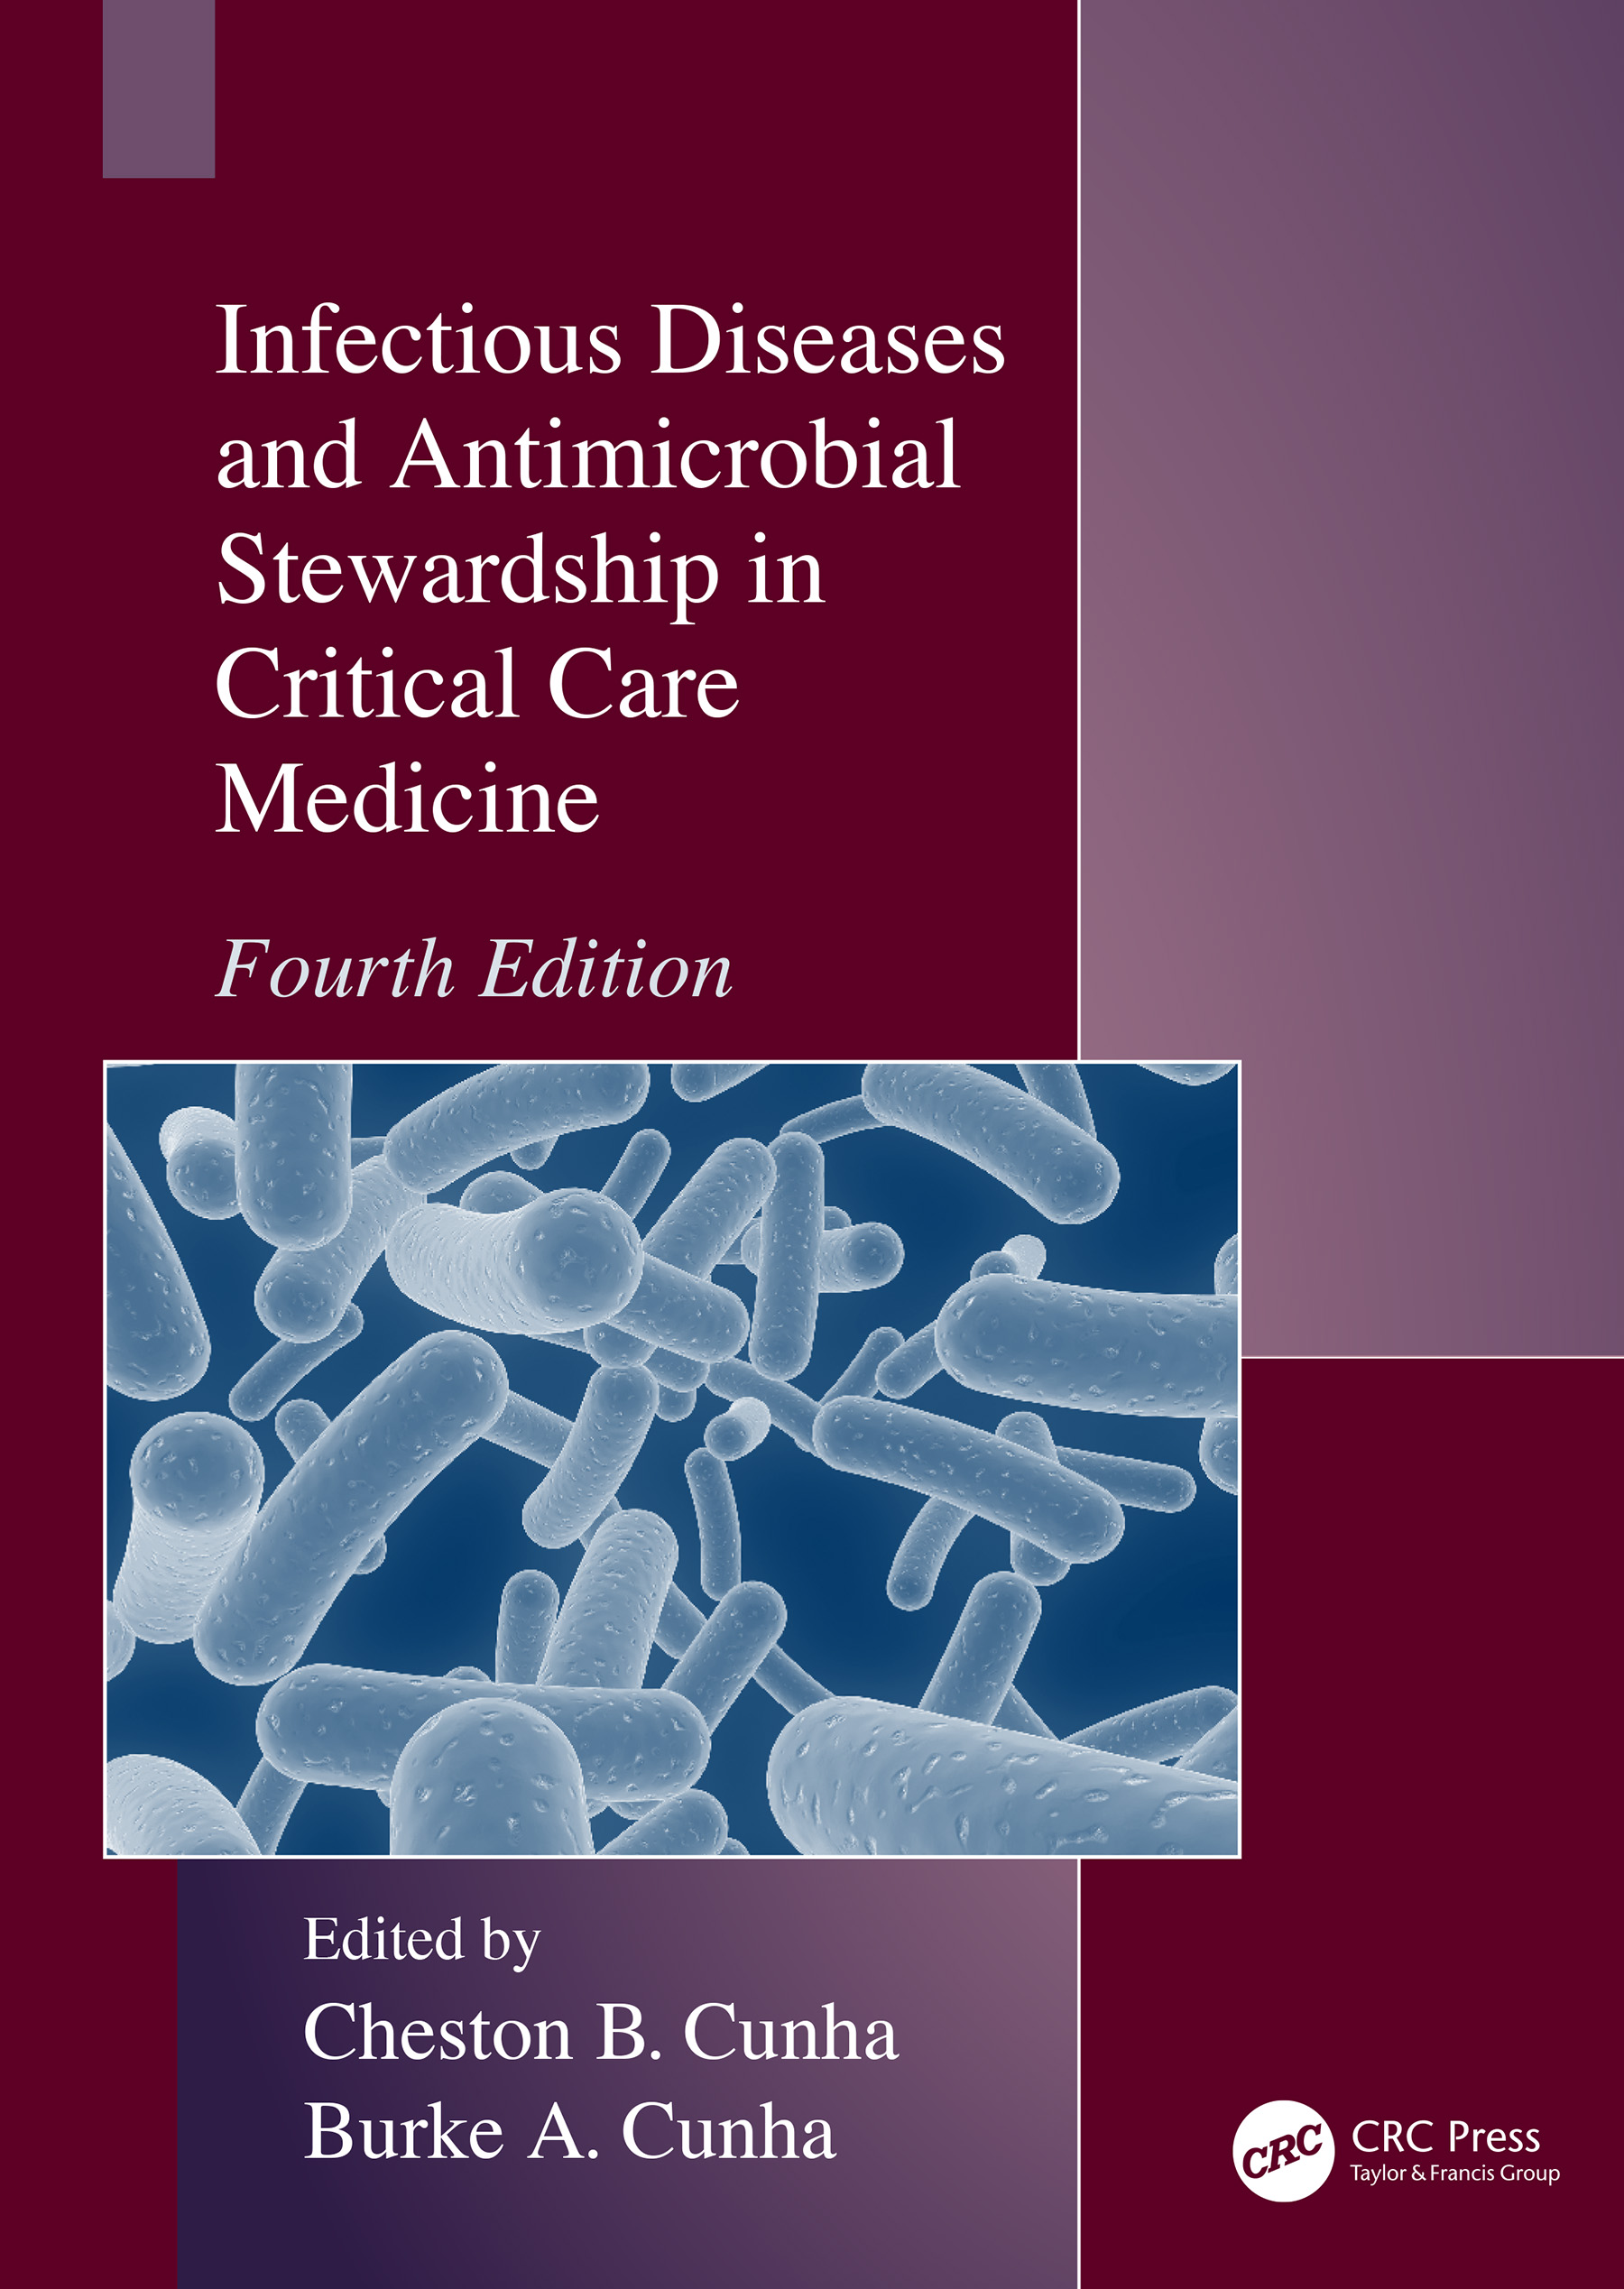 Infectious Diseases and Antimicrobial Stewardship in Critical Care Medicine book cover